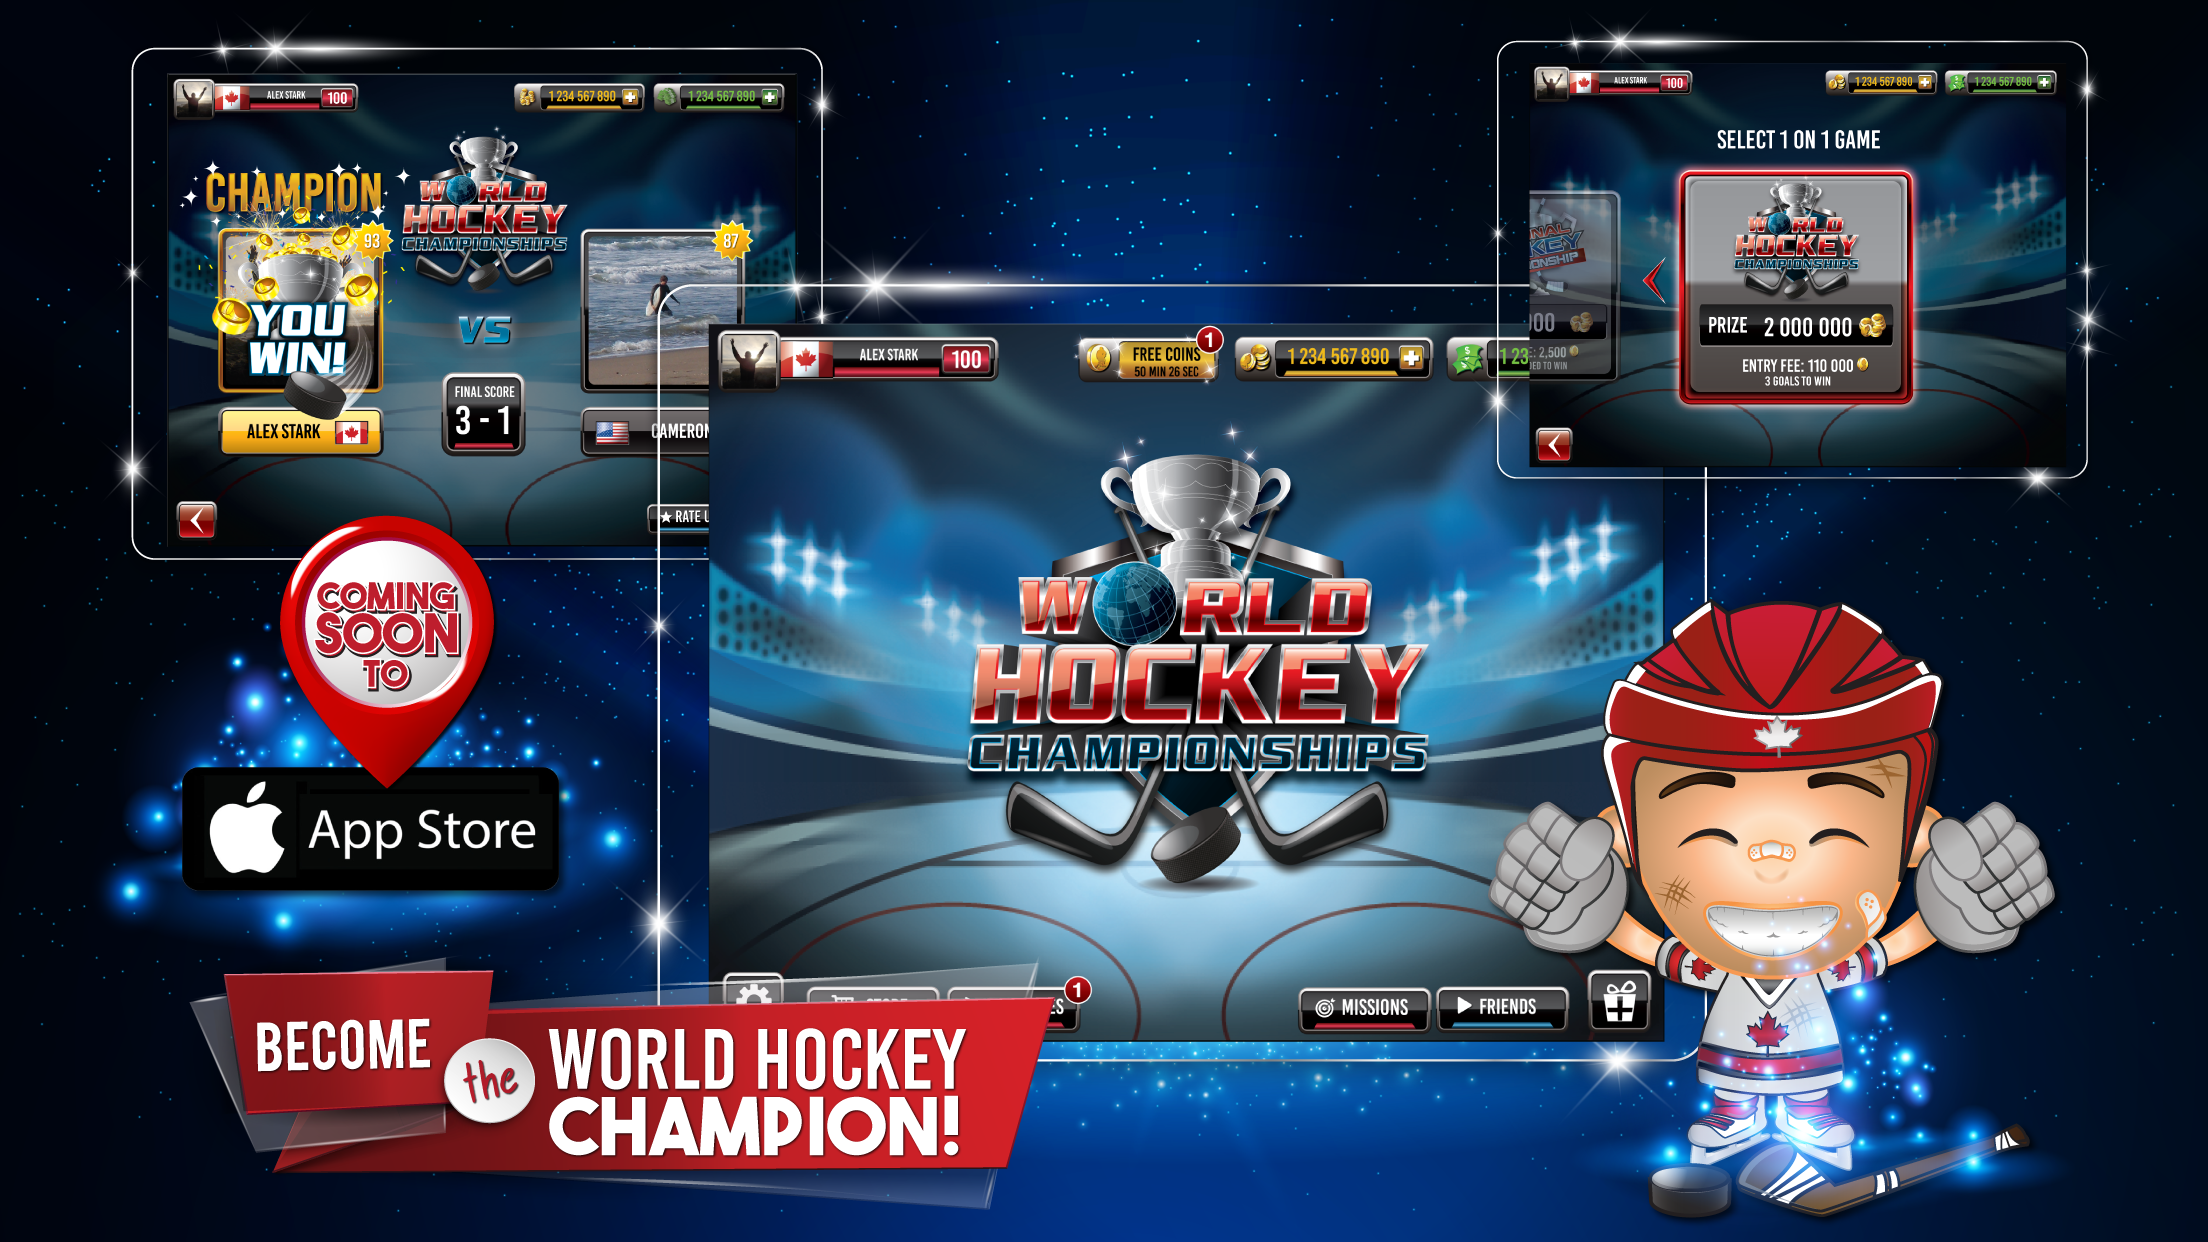 World Hockey Championships - Screenshot 1